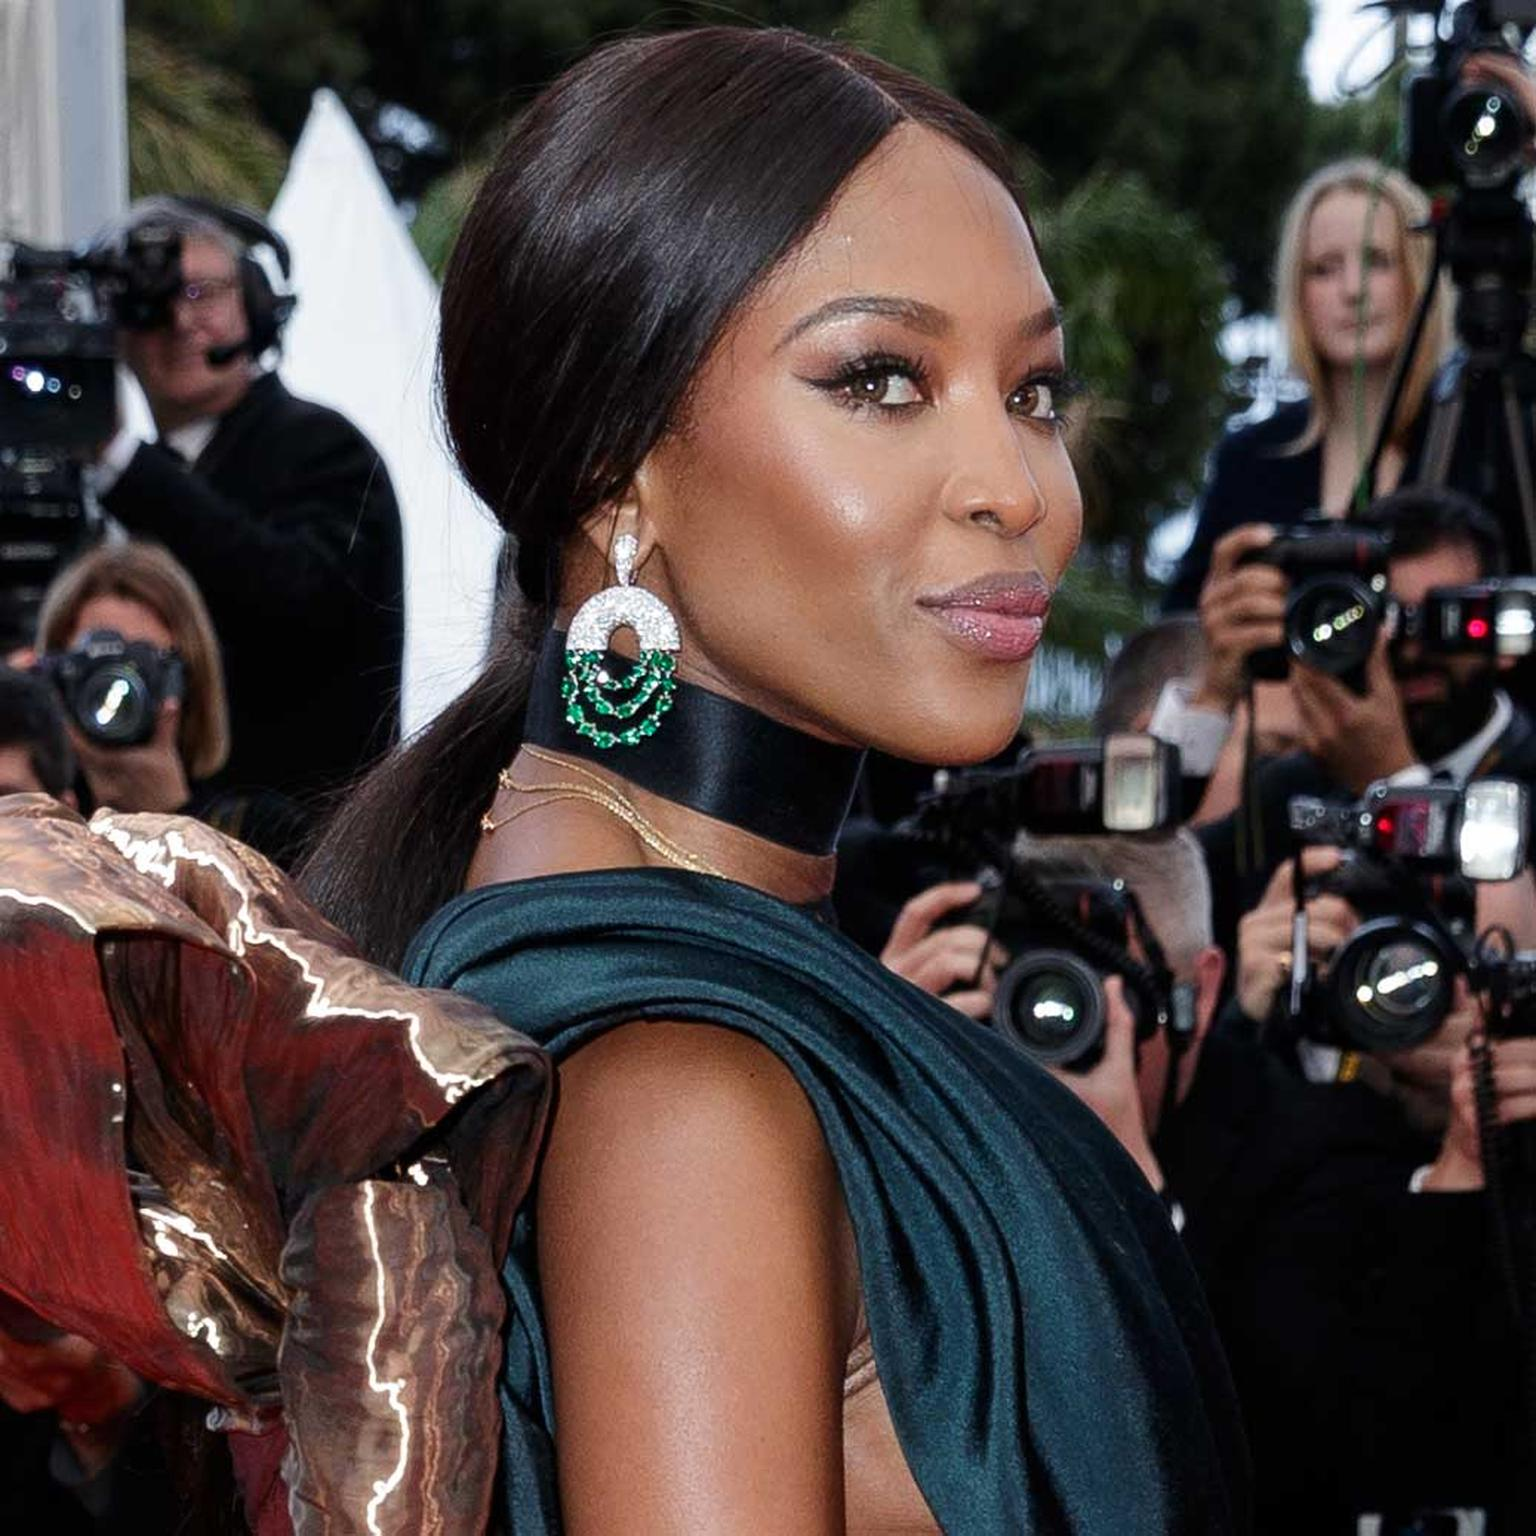 Naomi Campbell in De Grisogono emerald earrings on Cannes Red Carpet 2018